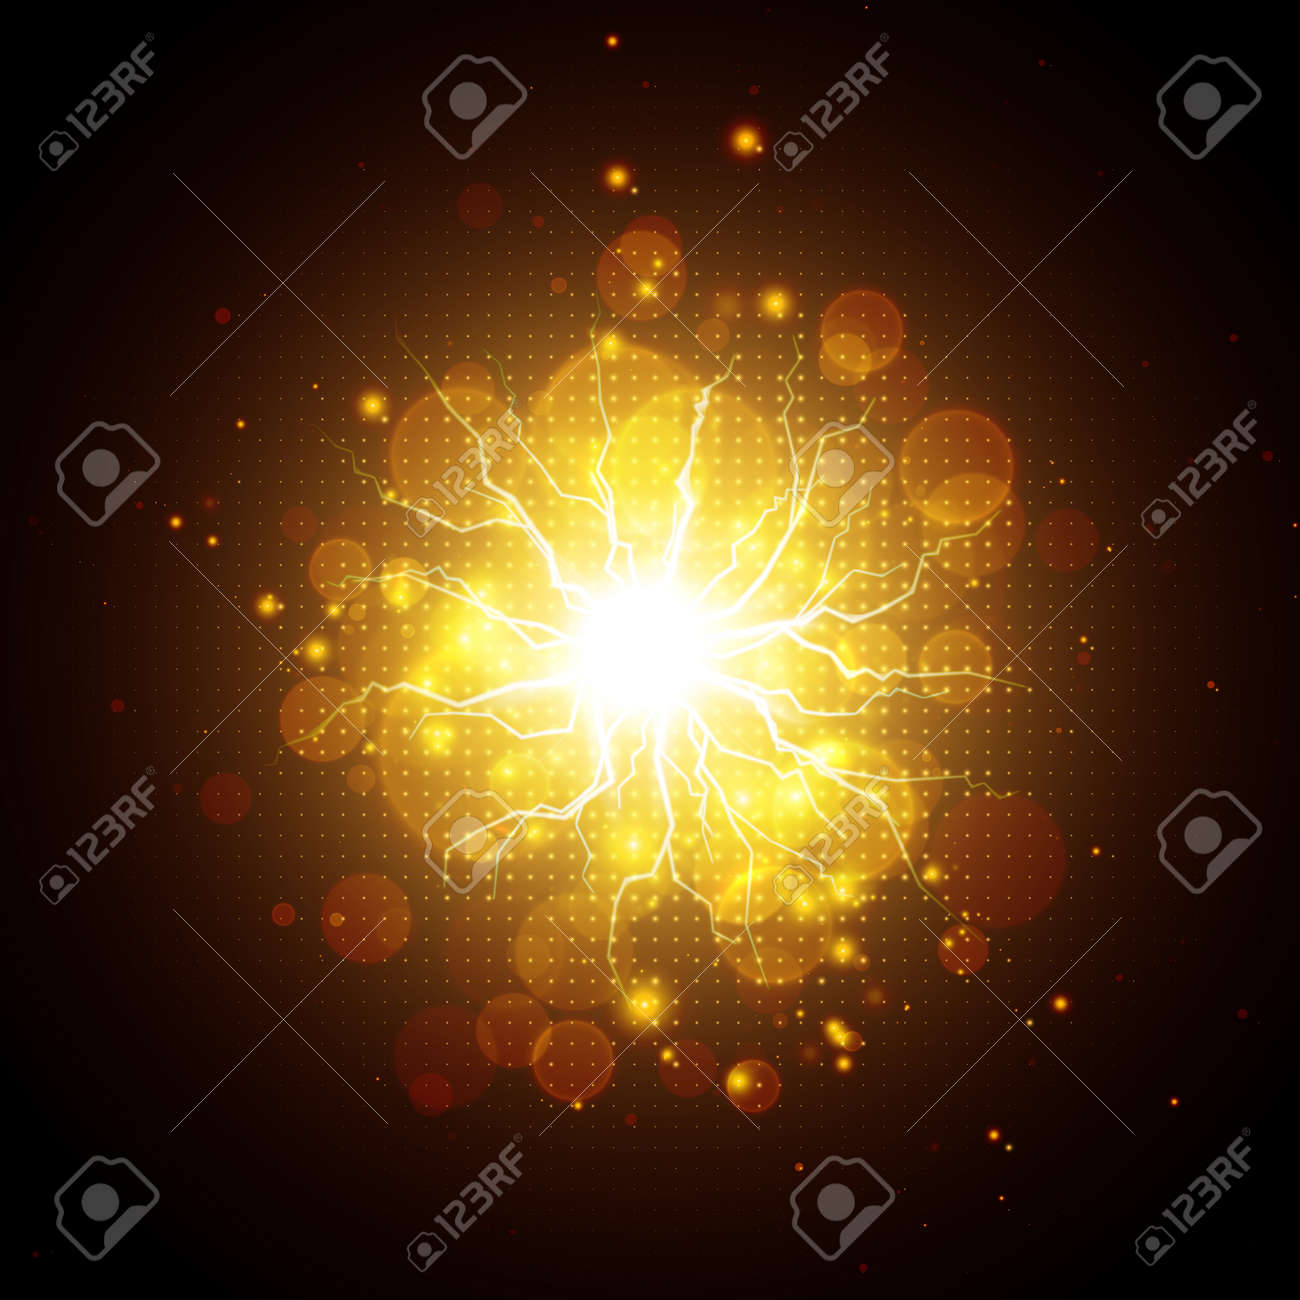 Golden glowing lights effects isolated on dark background, abstract magic energy Illustration - 169576790